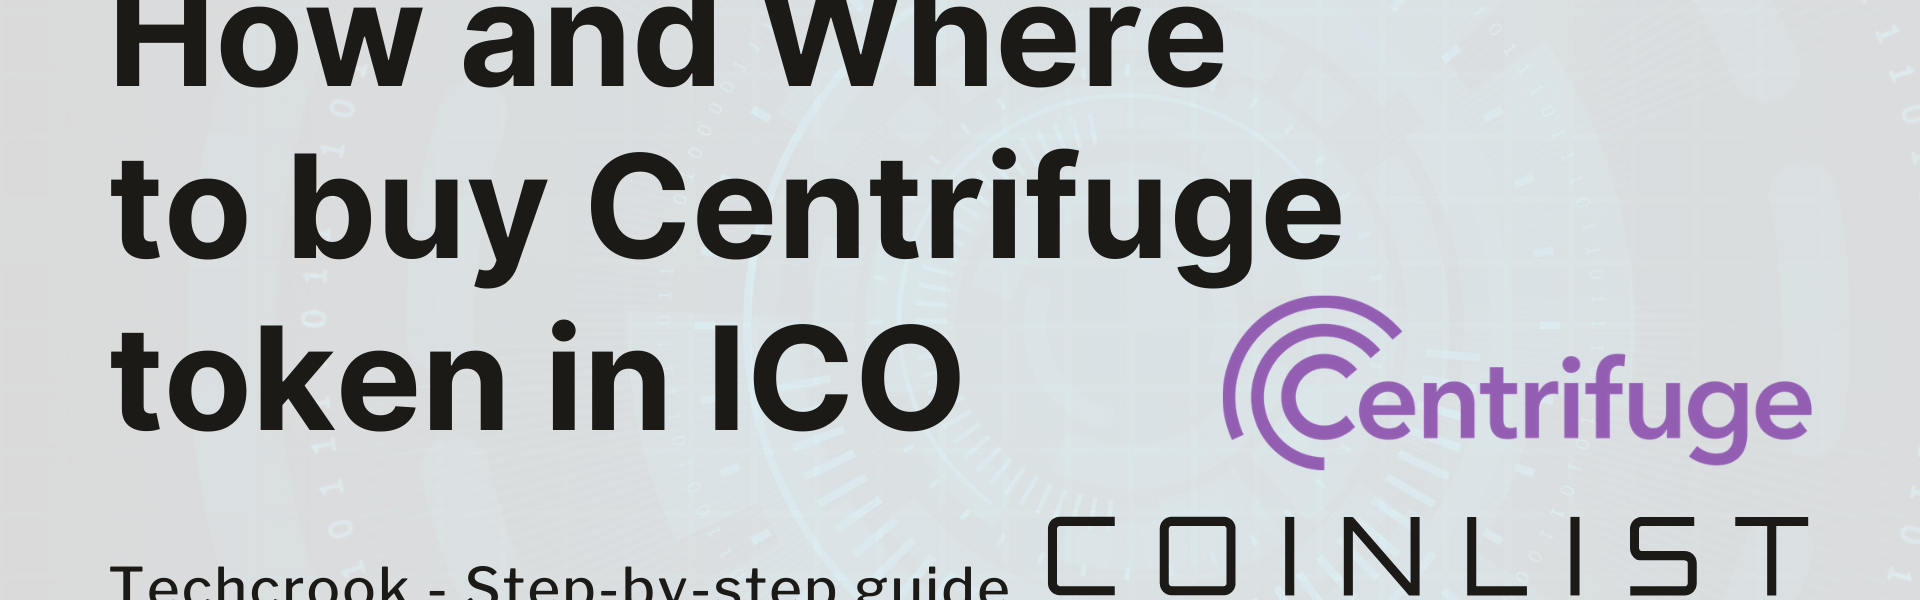 Buy Centrifuge Token CFG ICO presale from Coinlist step by step guide